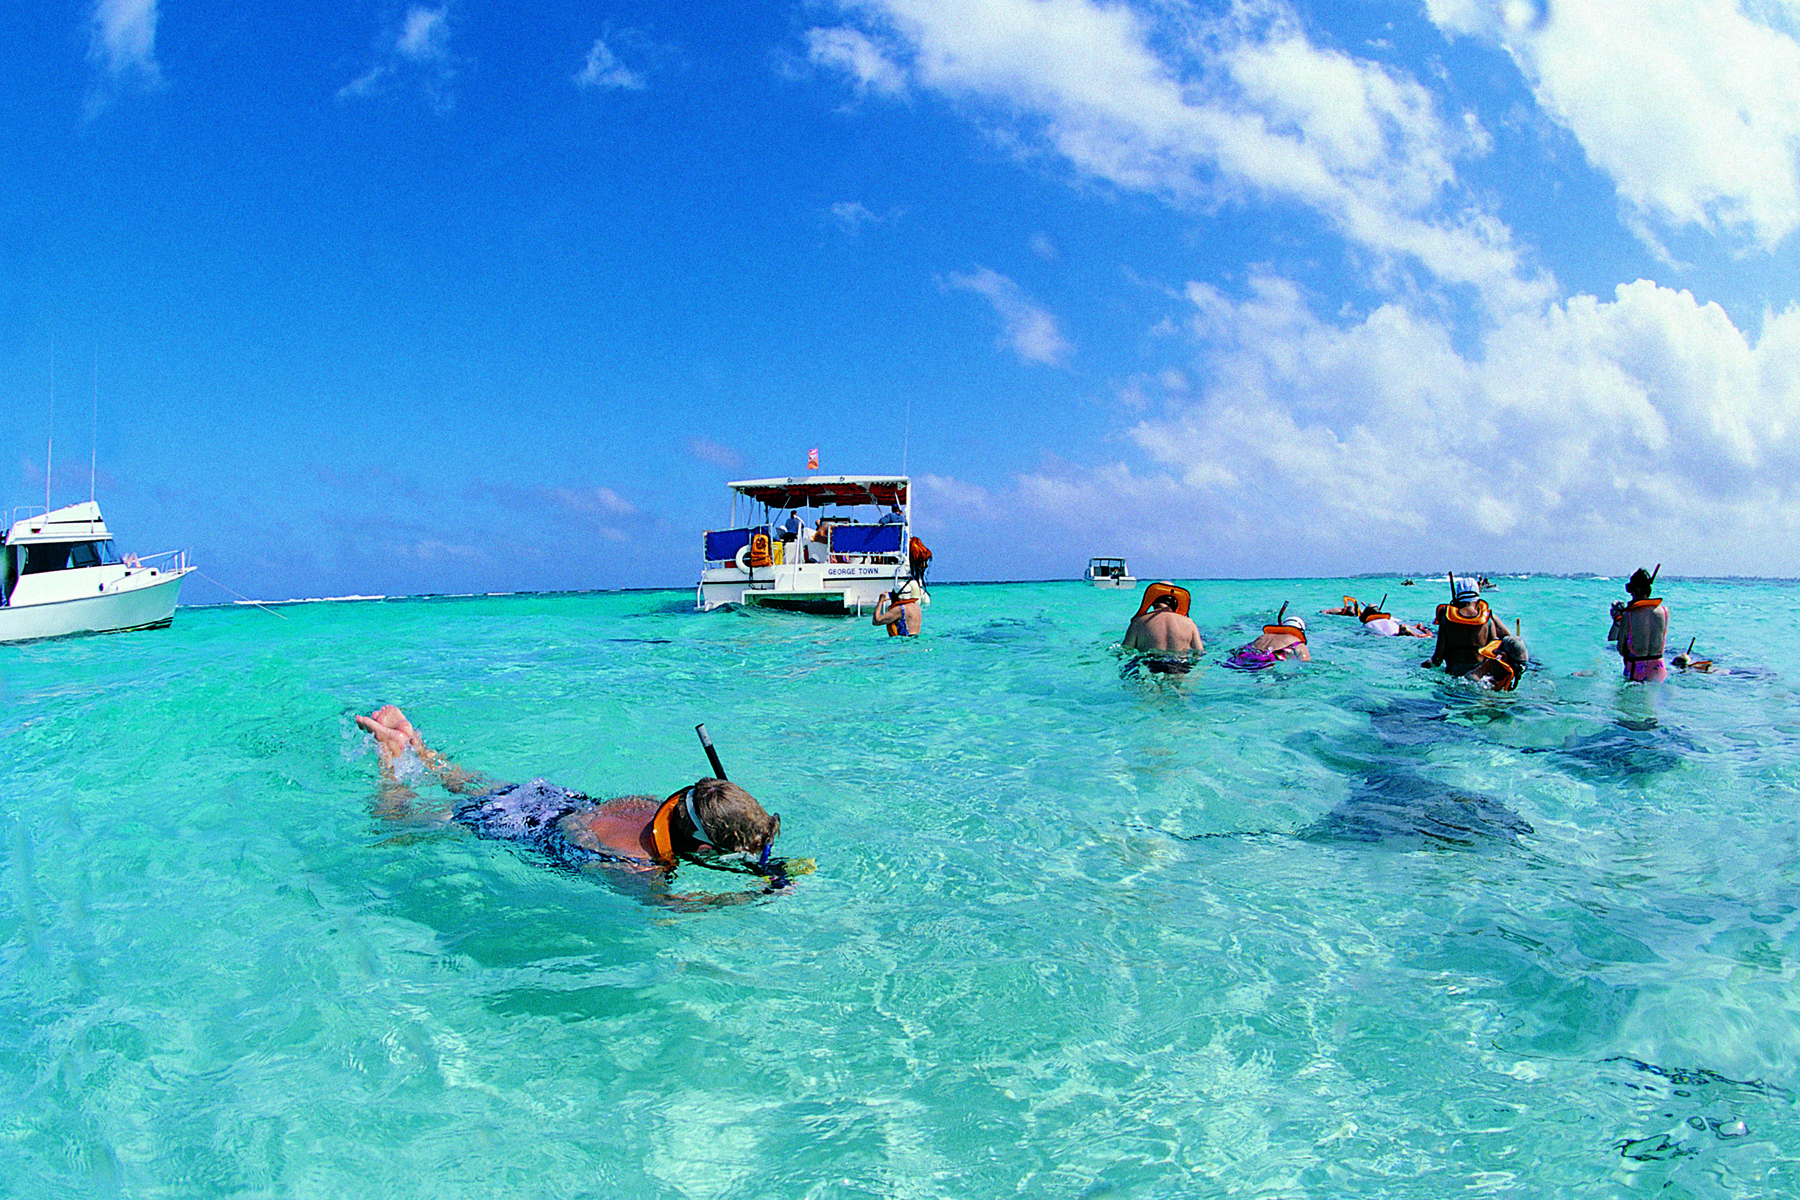 Global Customized and Private Vacation Market 2020 Manufacturer ...